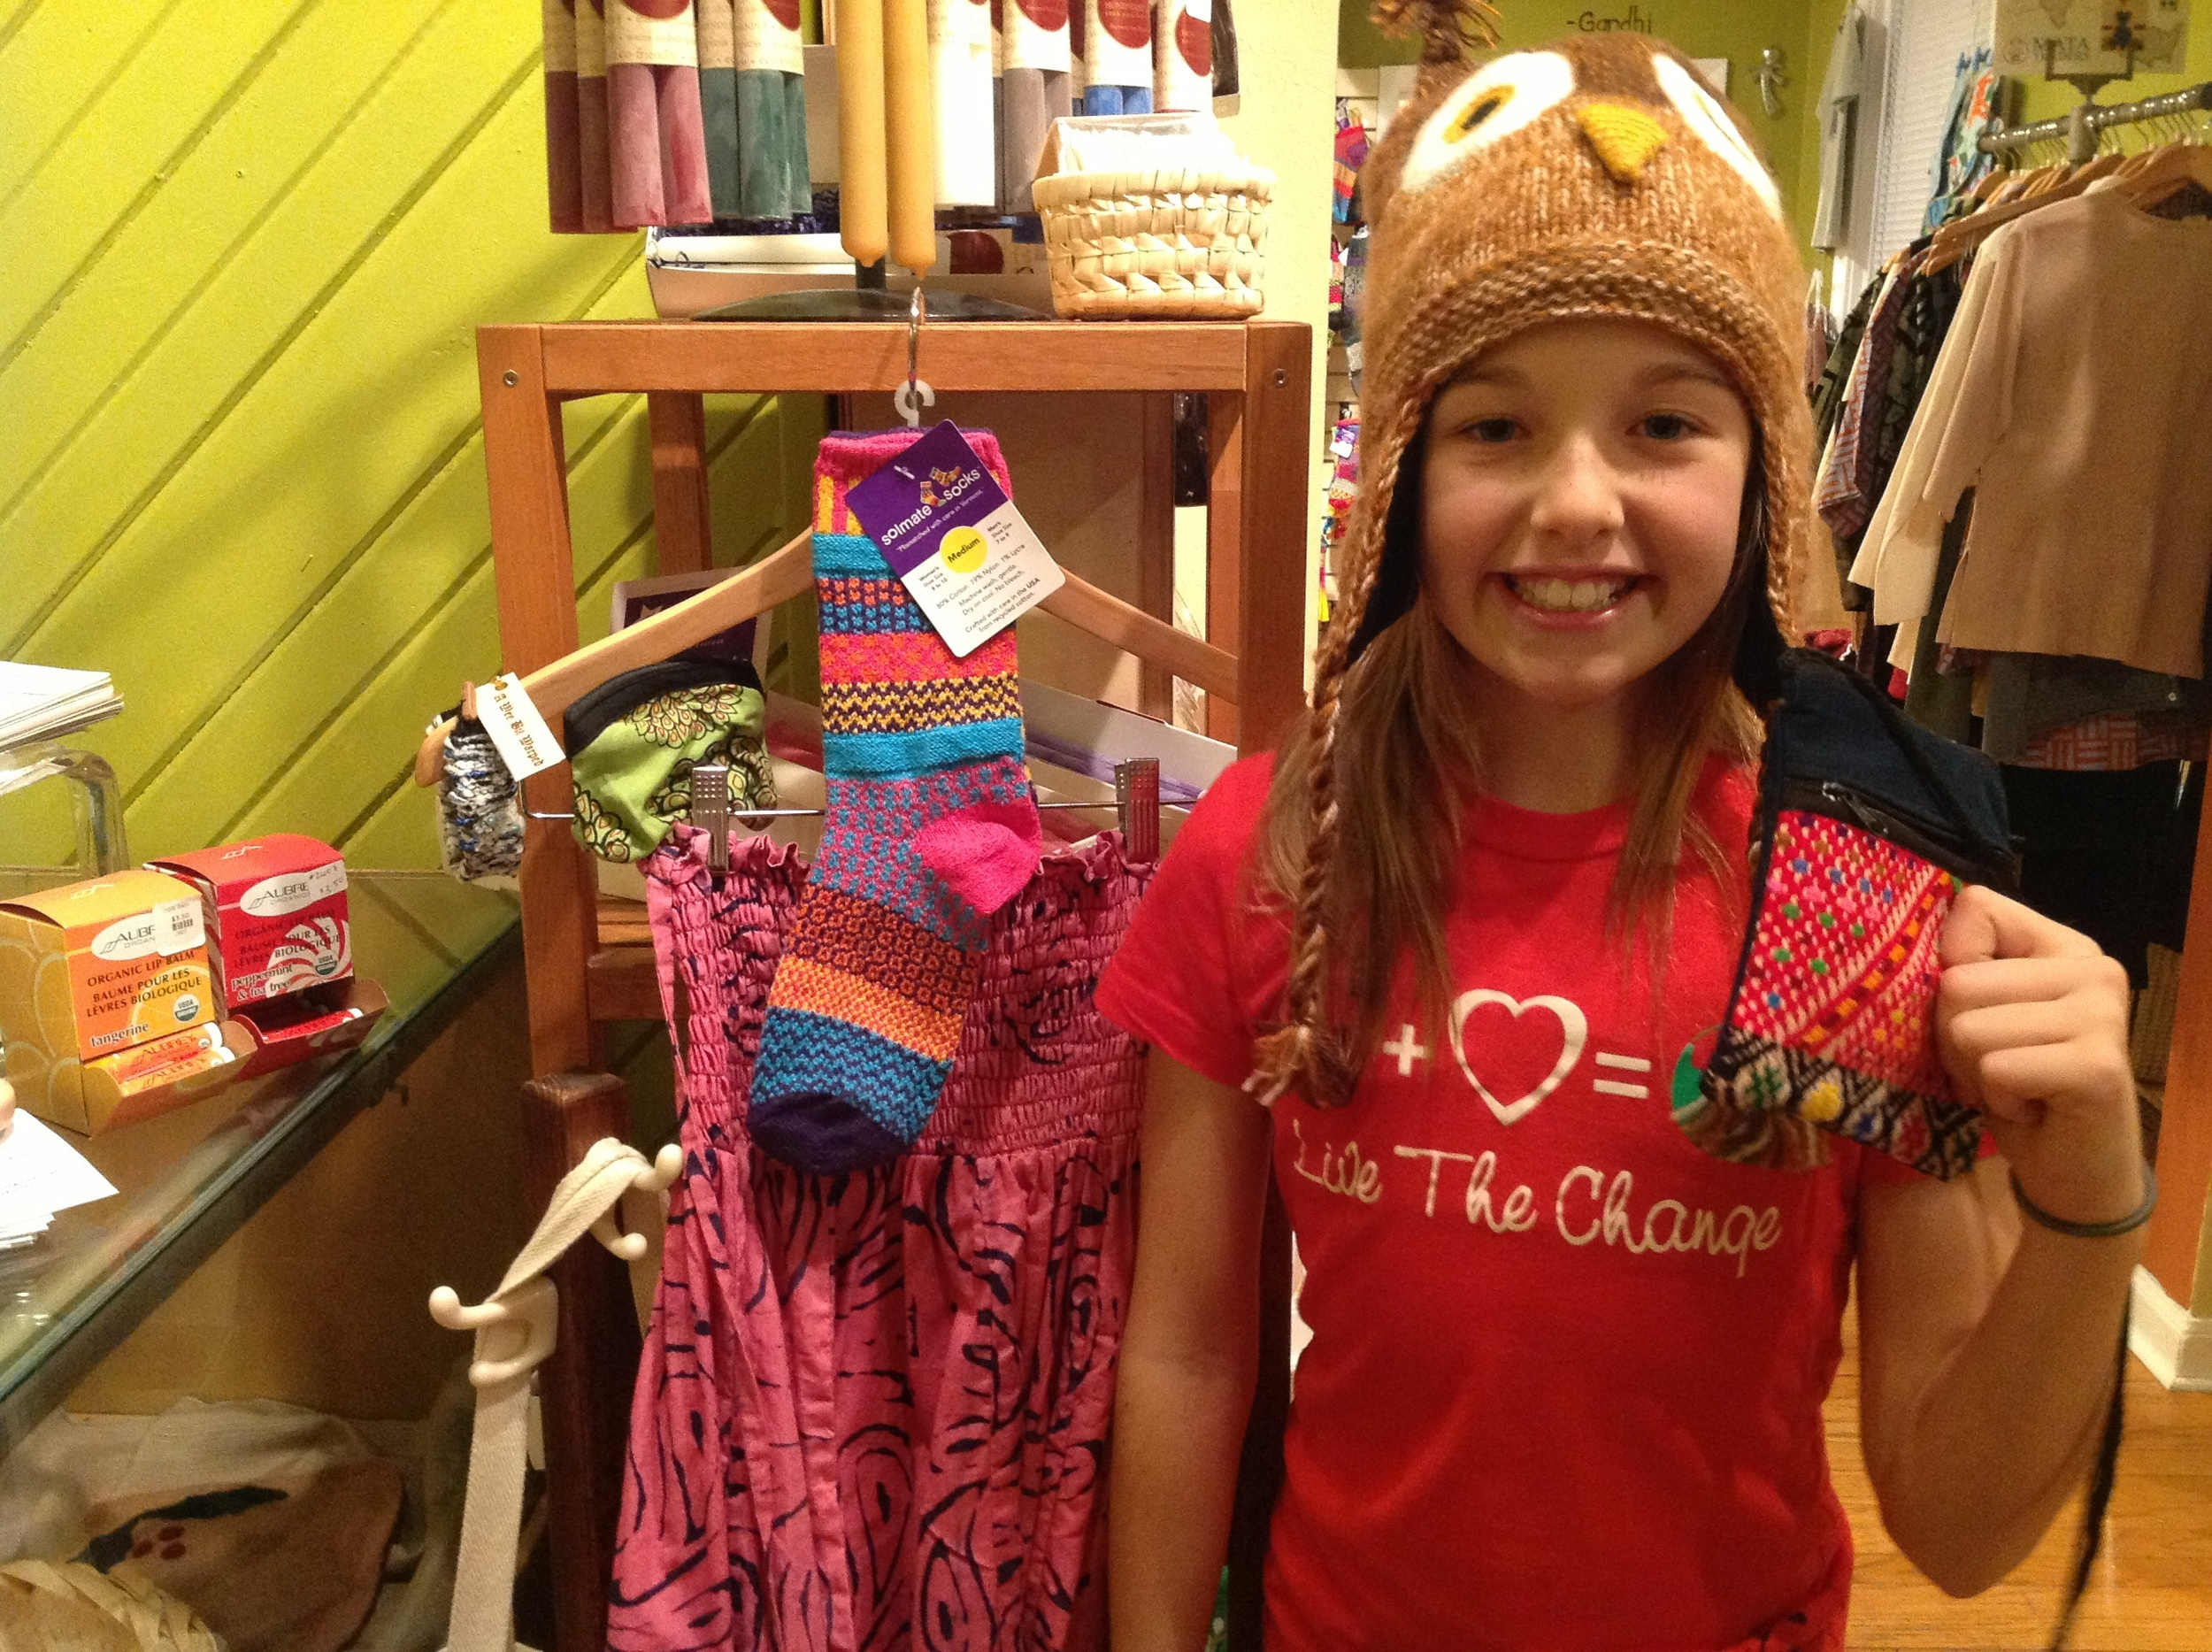 Lydia with great gift ideas for 10-12 year old girls.